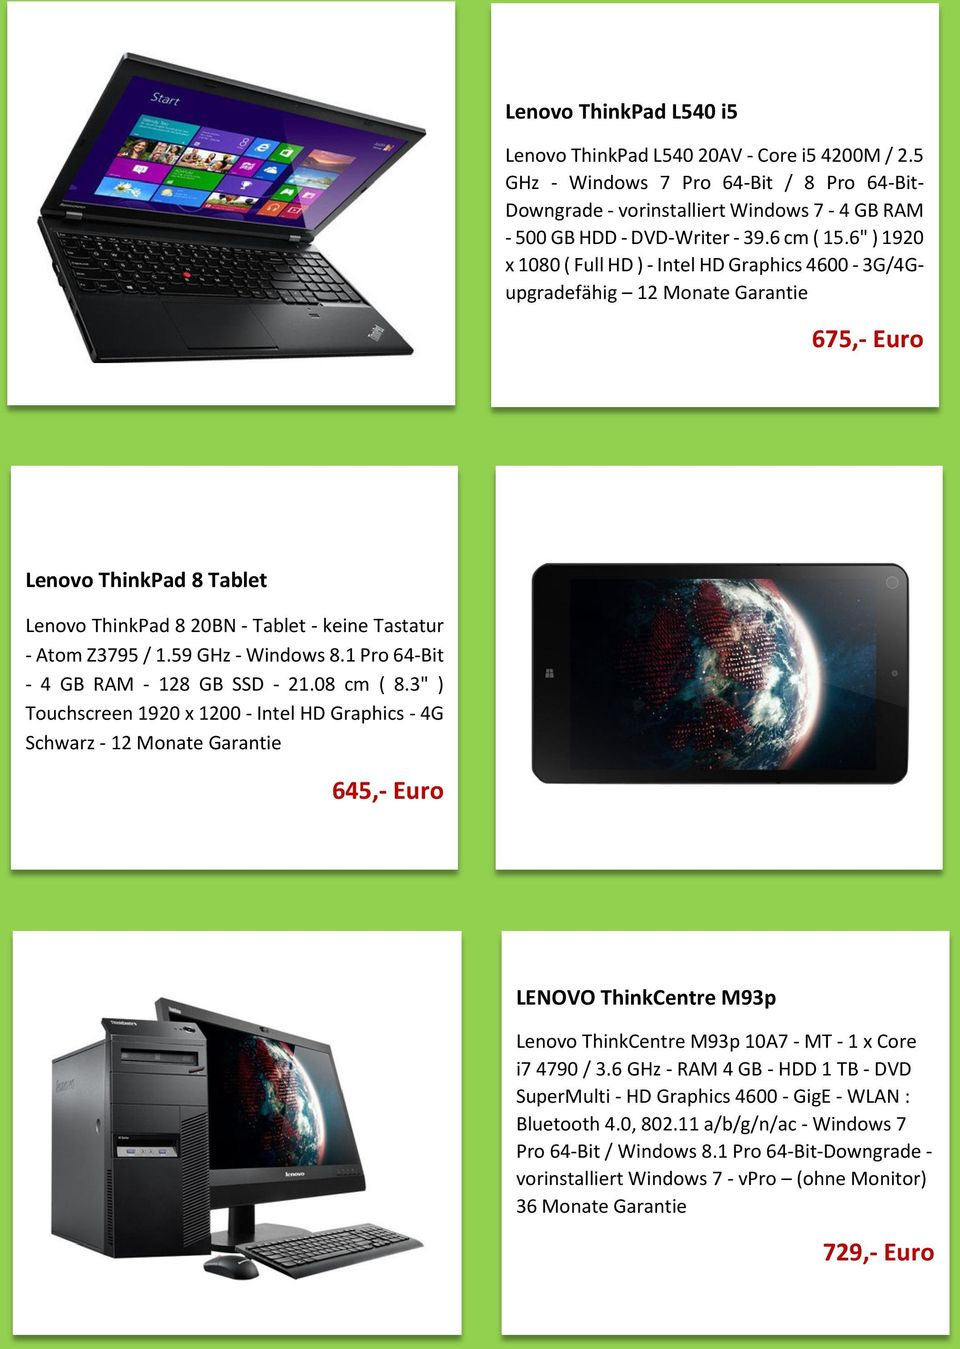 "6"" ) 1920 x 1080 ( Full HD ) - Intel HD Graphics 4600-3G/4Gupgradefähig 12 Monate Garantie 675,- Euro Lenovo ThinkPad 8 Tablet Lenovo ThinkPad 8 20BN - Tablet - keine Tastatur - Atom Z3795 / 1."